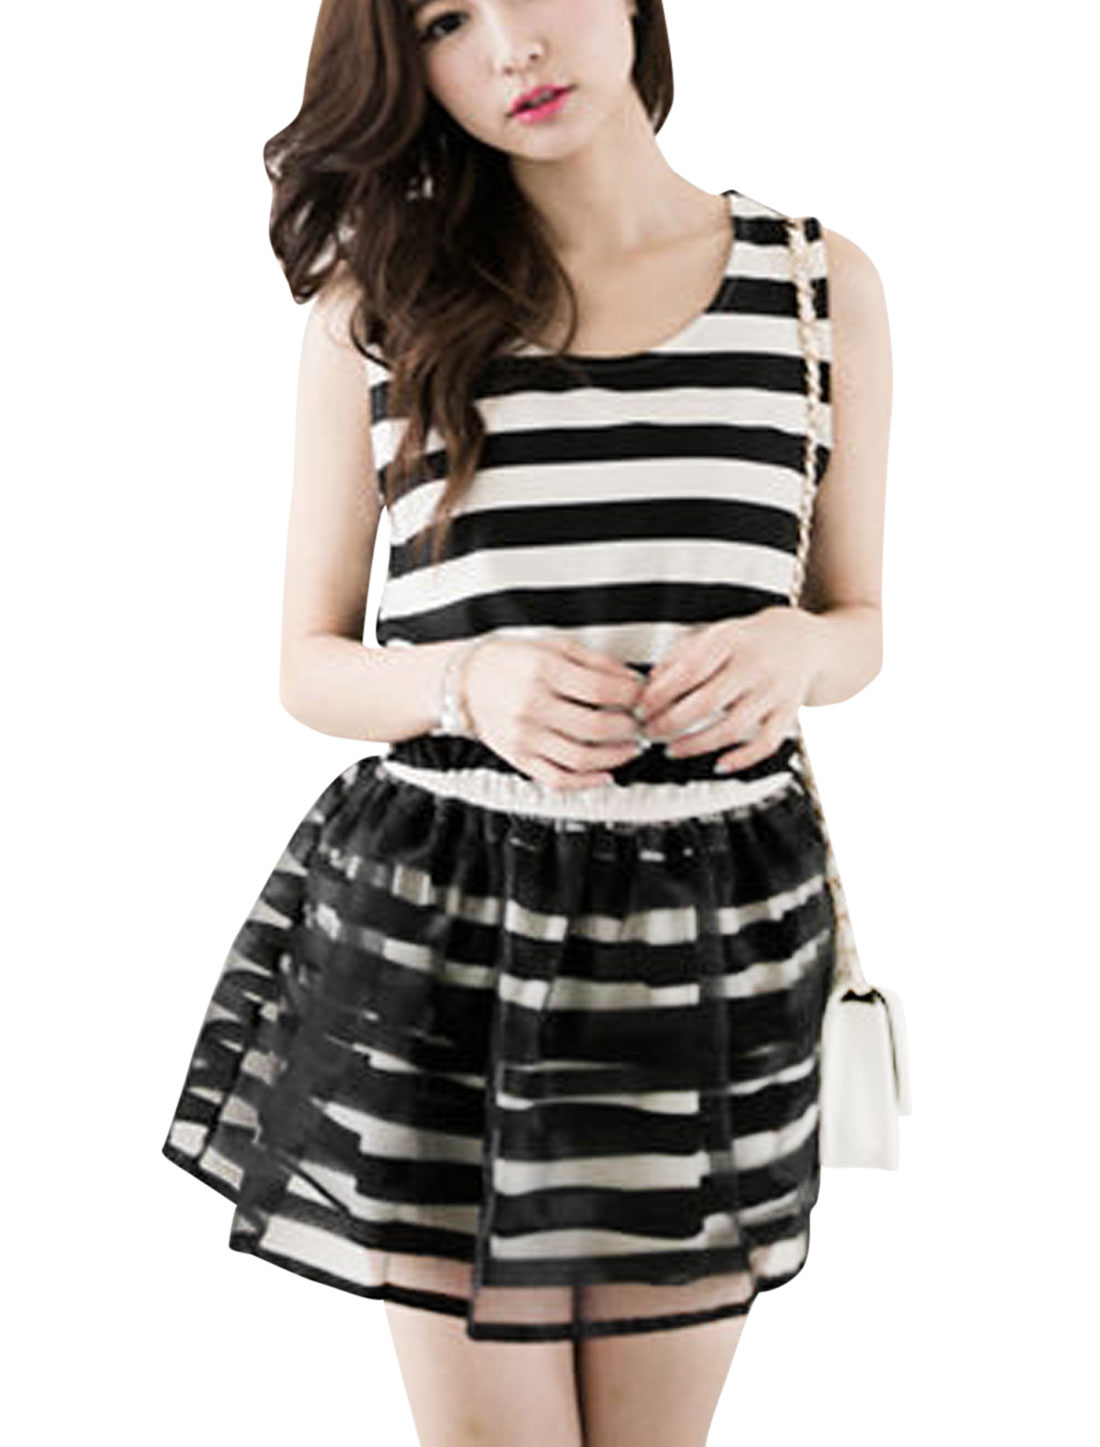 Lady Stripes Organza Panel Elastic Waist Dress Black White XS